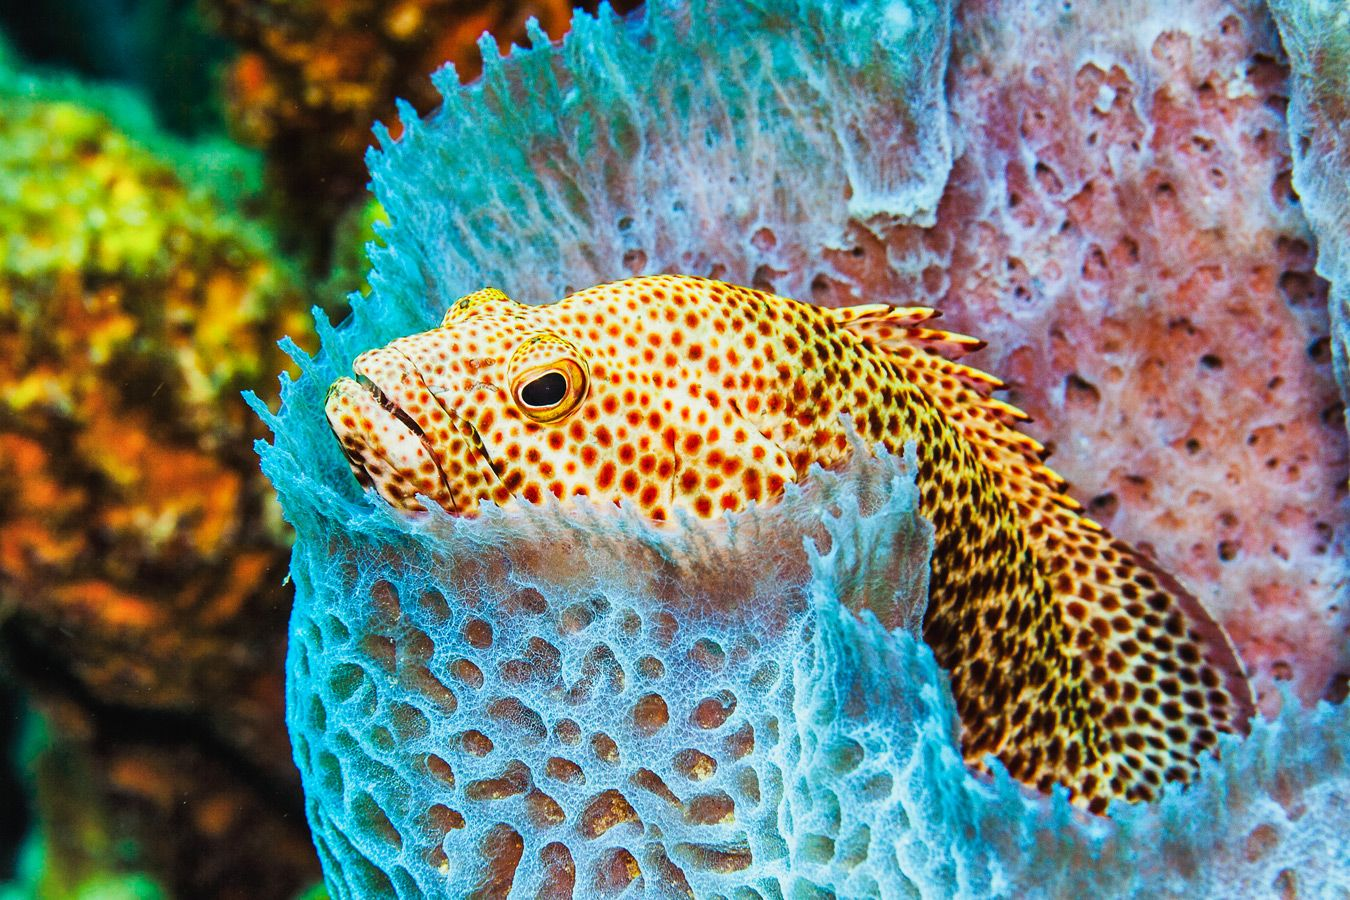 Grouper in a sponge - Turks and Caicos